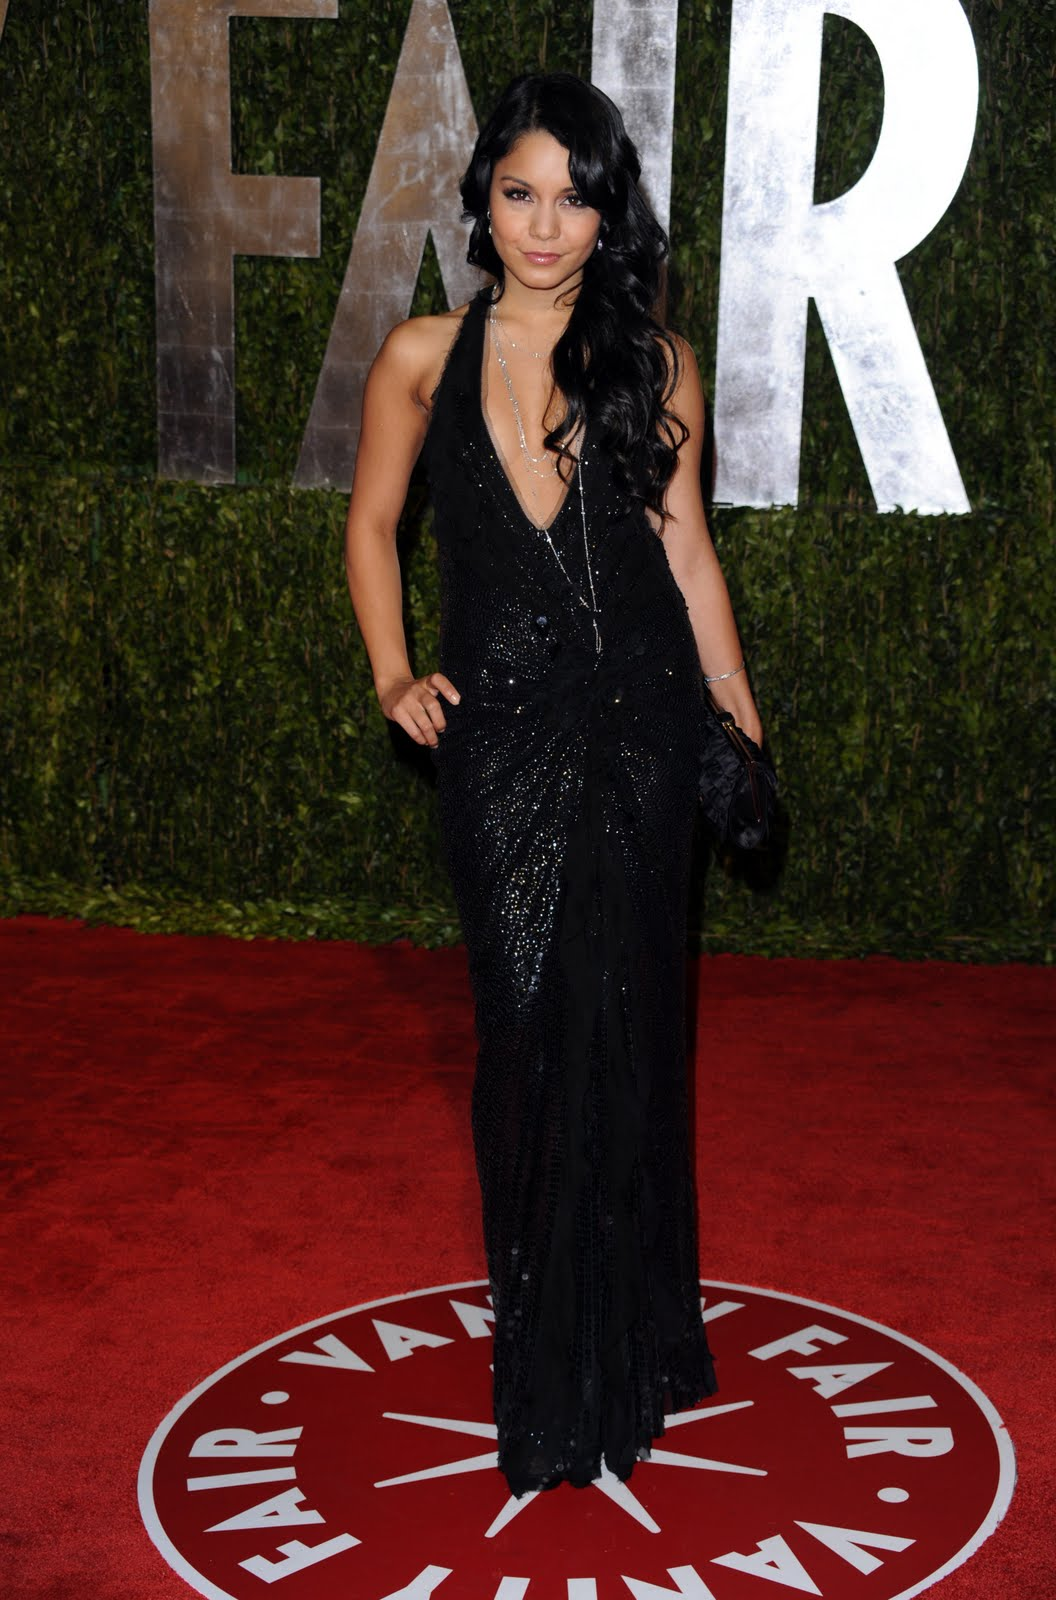 7 days ago· The AMAs red carpet is in full swing, and while there have been so many incredible looks for the event, Vanessa Hudgens has been a true standout with her outfit. Wearing a .